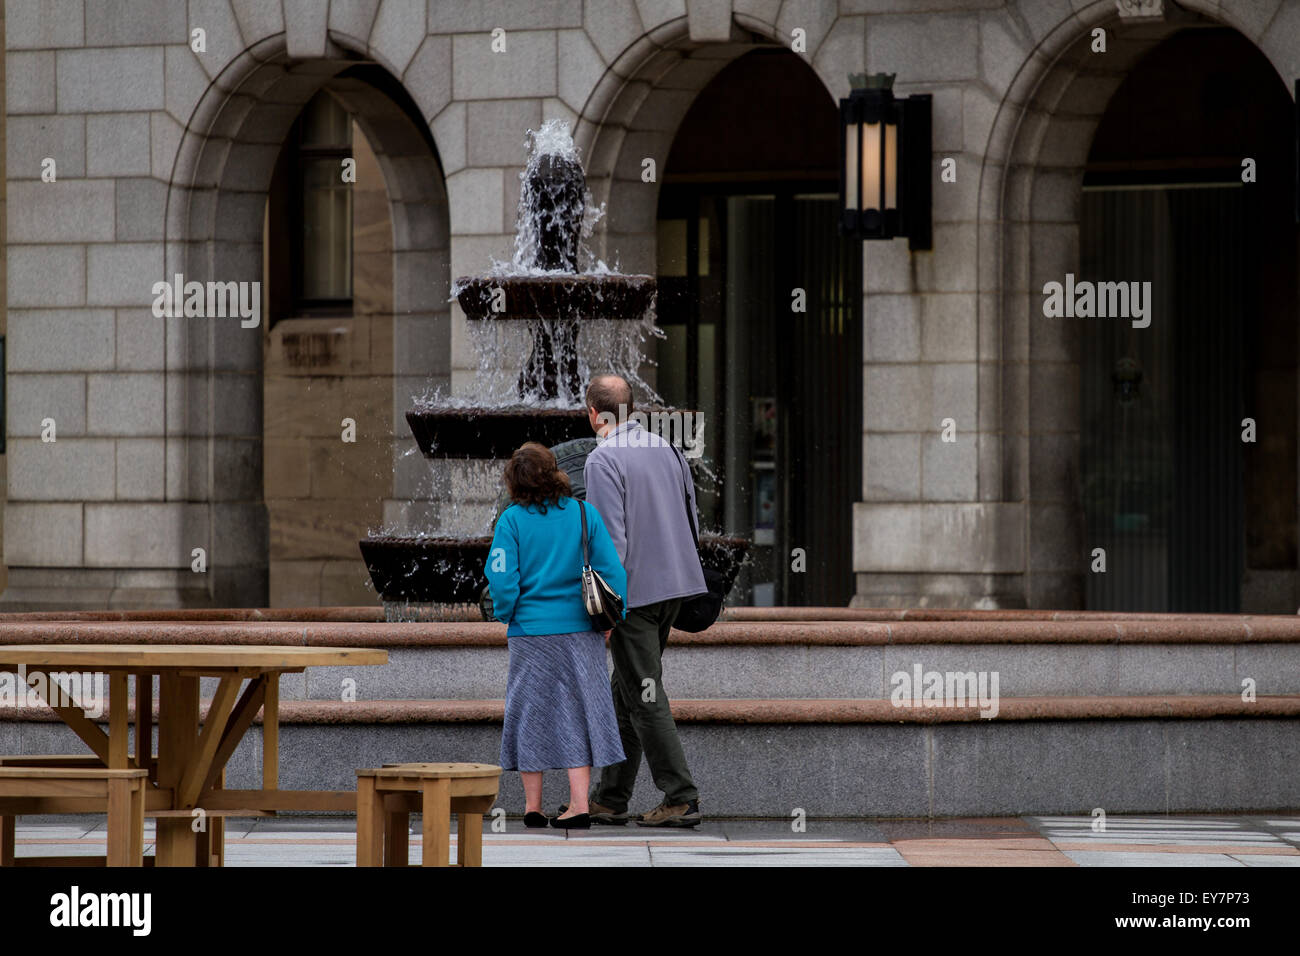 Well dressed middle aged couple standing admiring the water fountain at the City Square in Dundee, UK - Stock Image